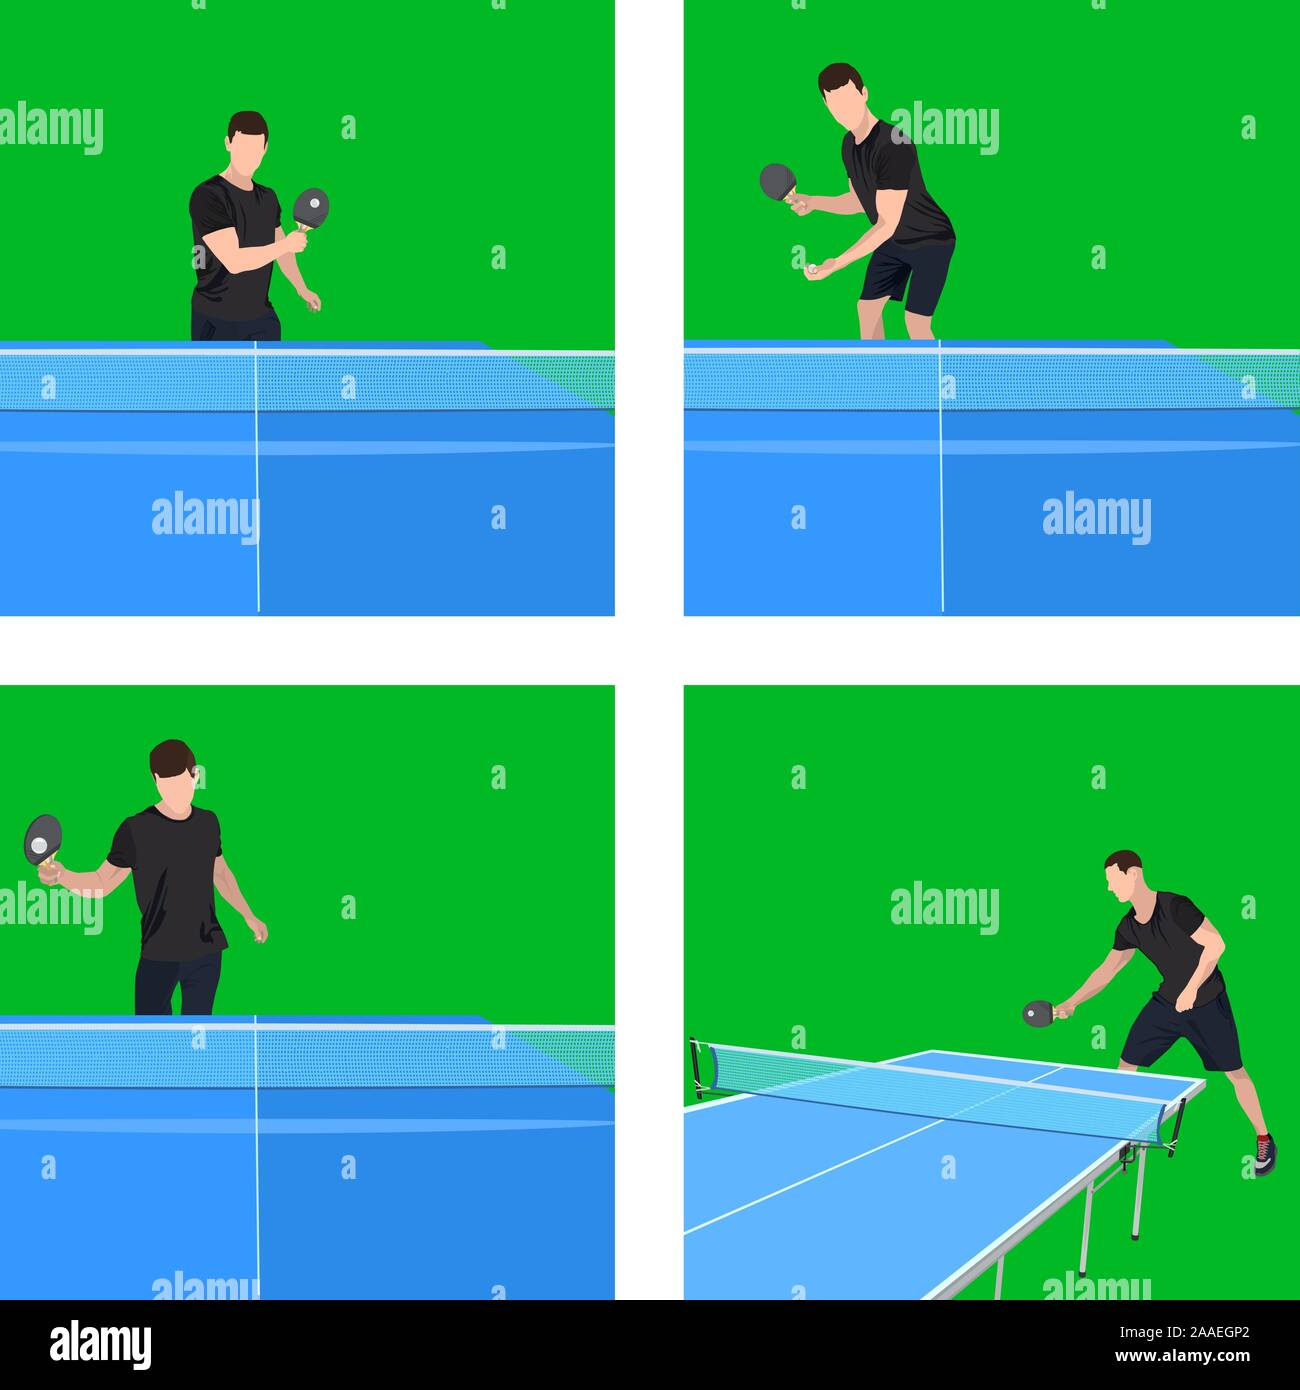 Jeu de ping-pong player jouer au tennis, jeu d'illustration vectorielle Illustration de Vecteur